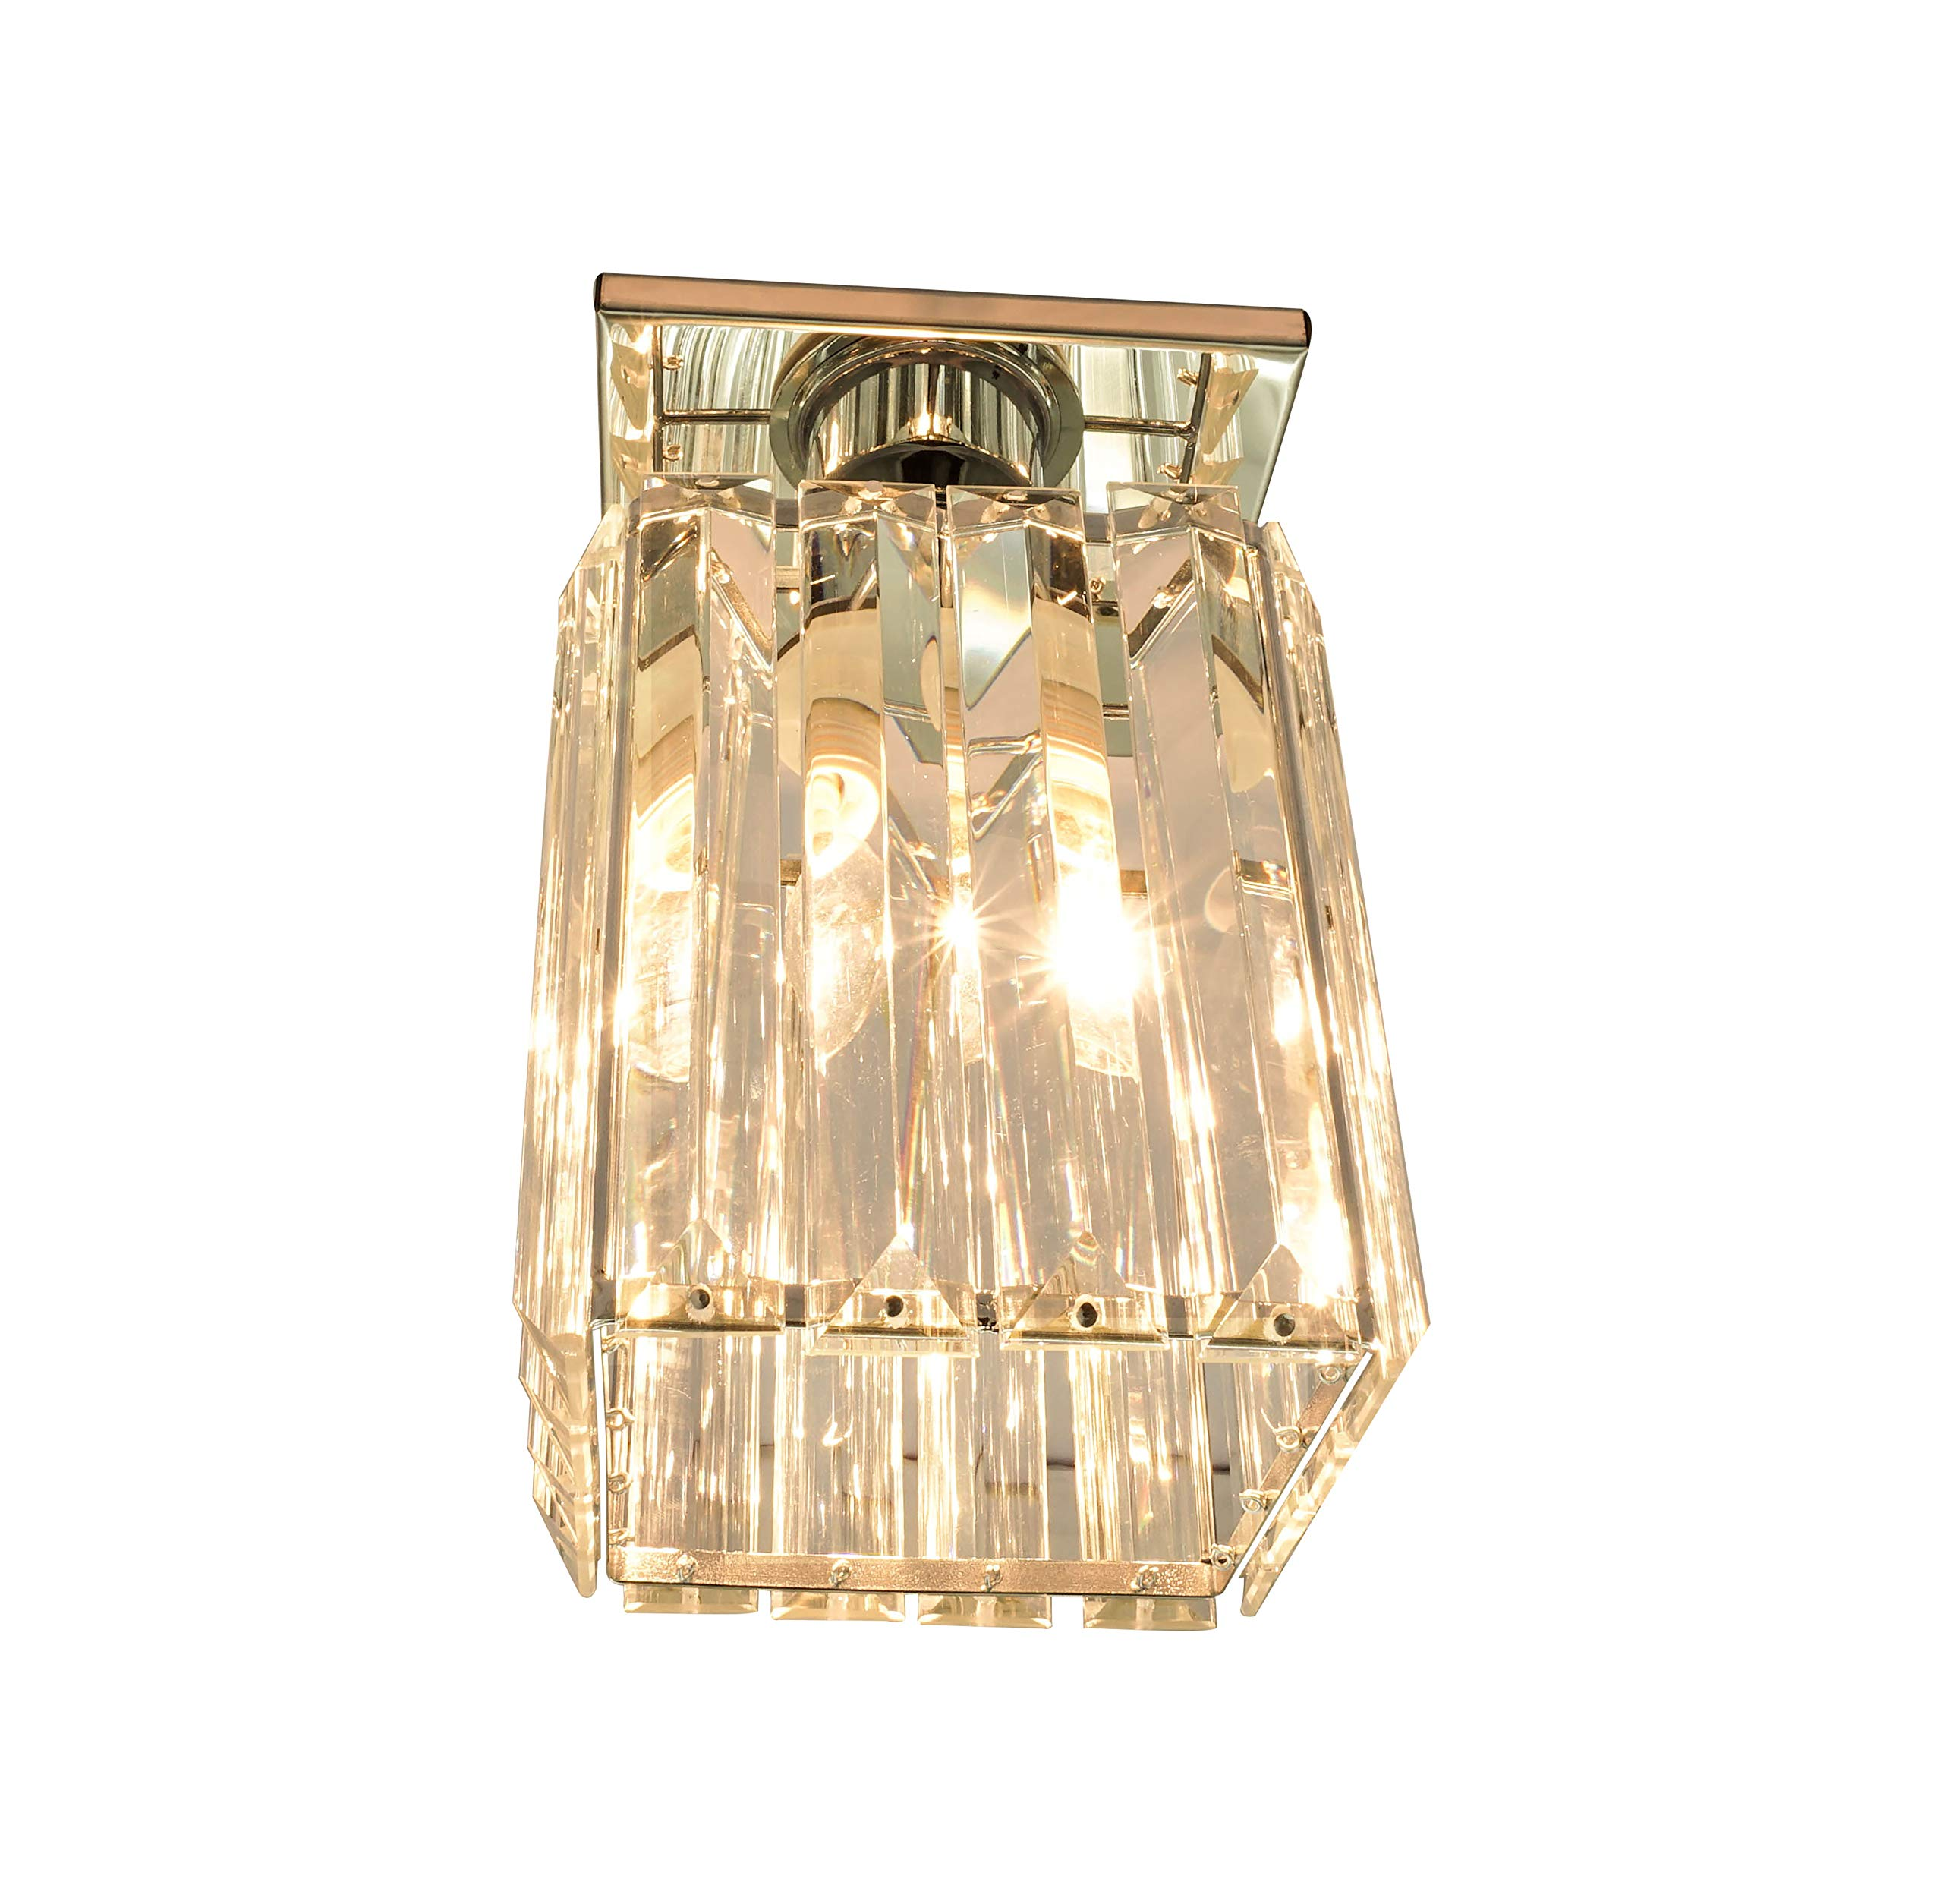 Agnes Lighting Crystal Ceiling Lamp, Chandelier, 1 Light, W5.12''L5.12 H8.27'' by Agnes Lighting (Image #1)